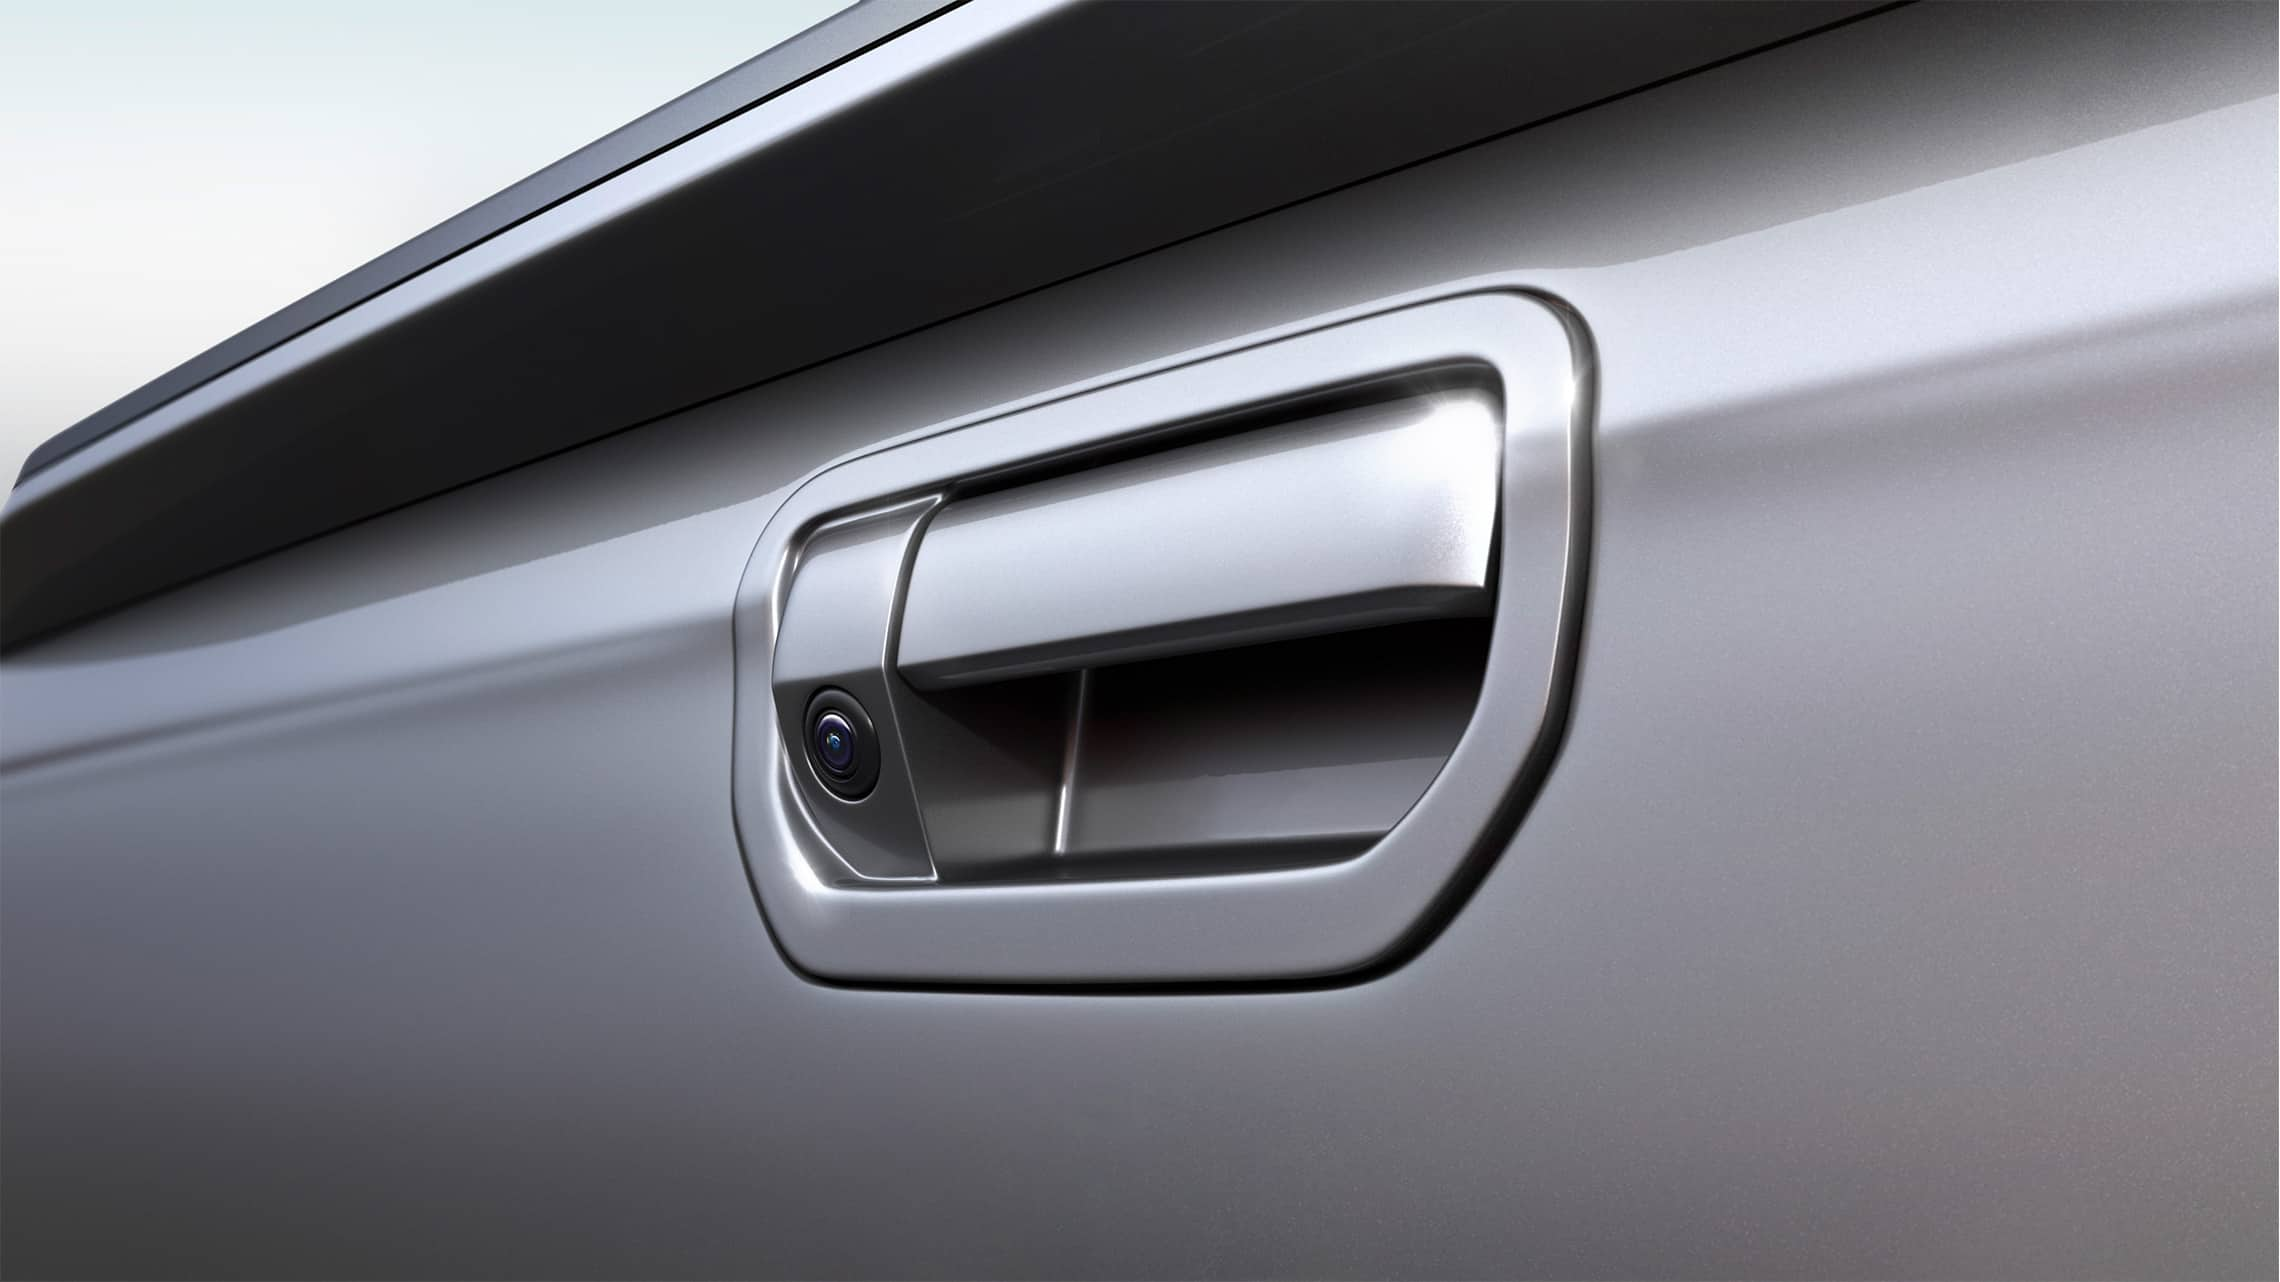 Multi-angle rearview camera detail displayed on tailgate handle on the 2020 Honda Ridgeline in Lunar Silver Metallic.